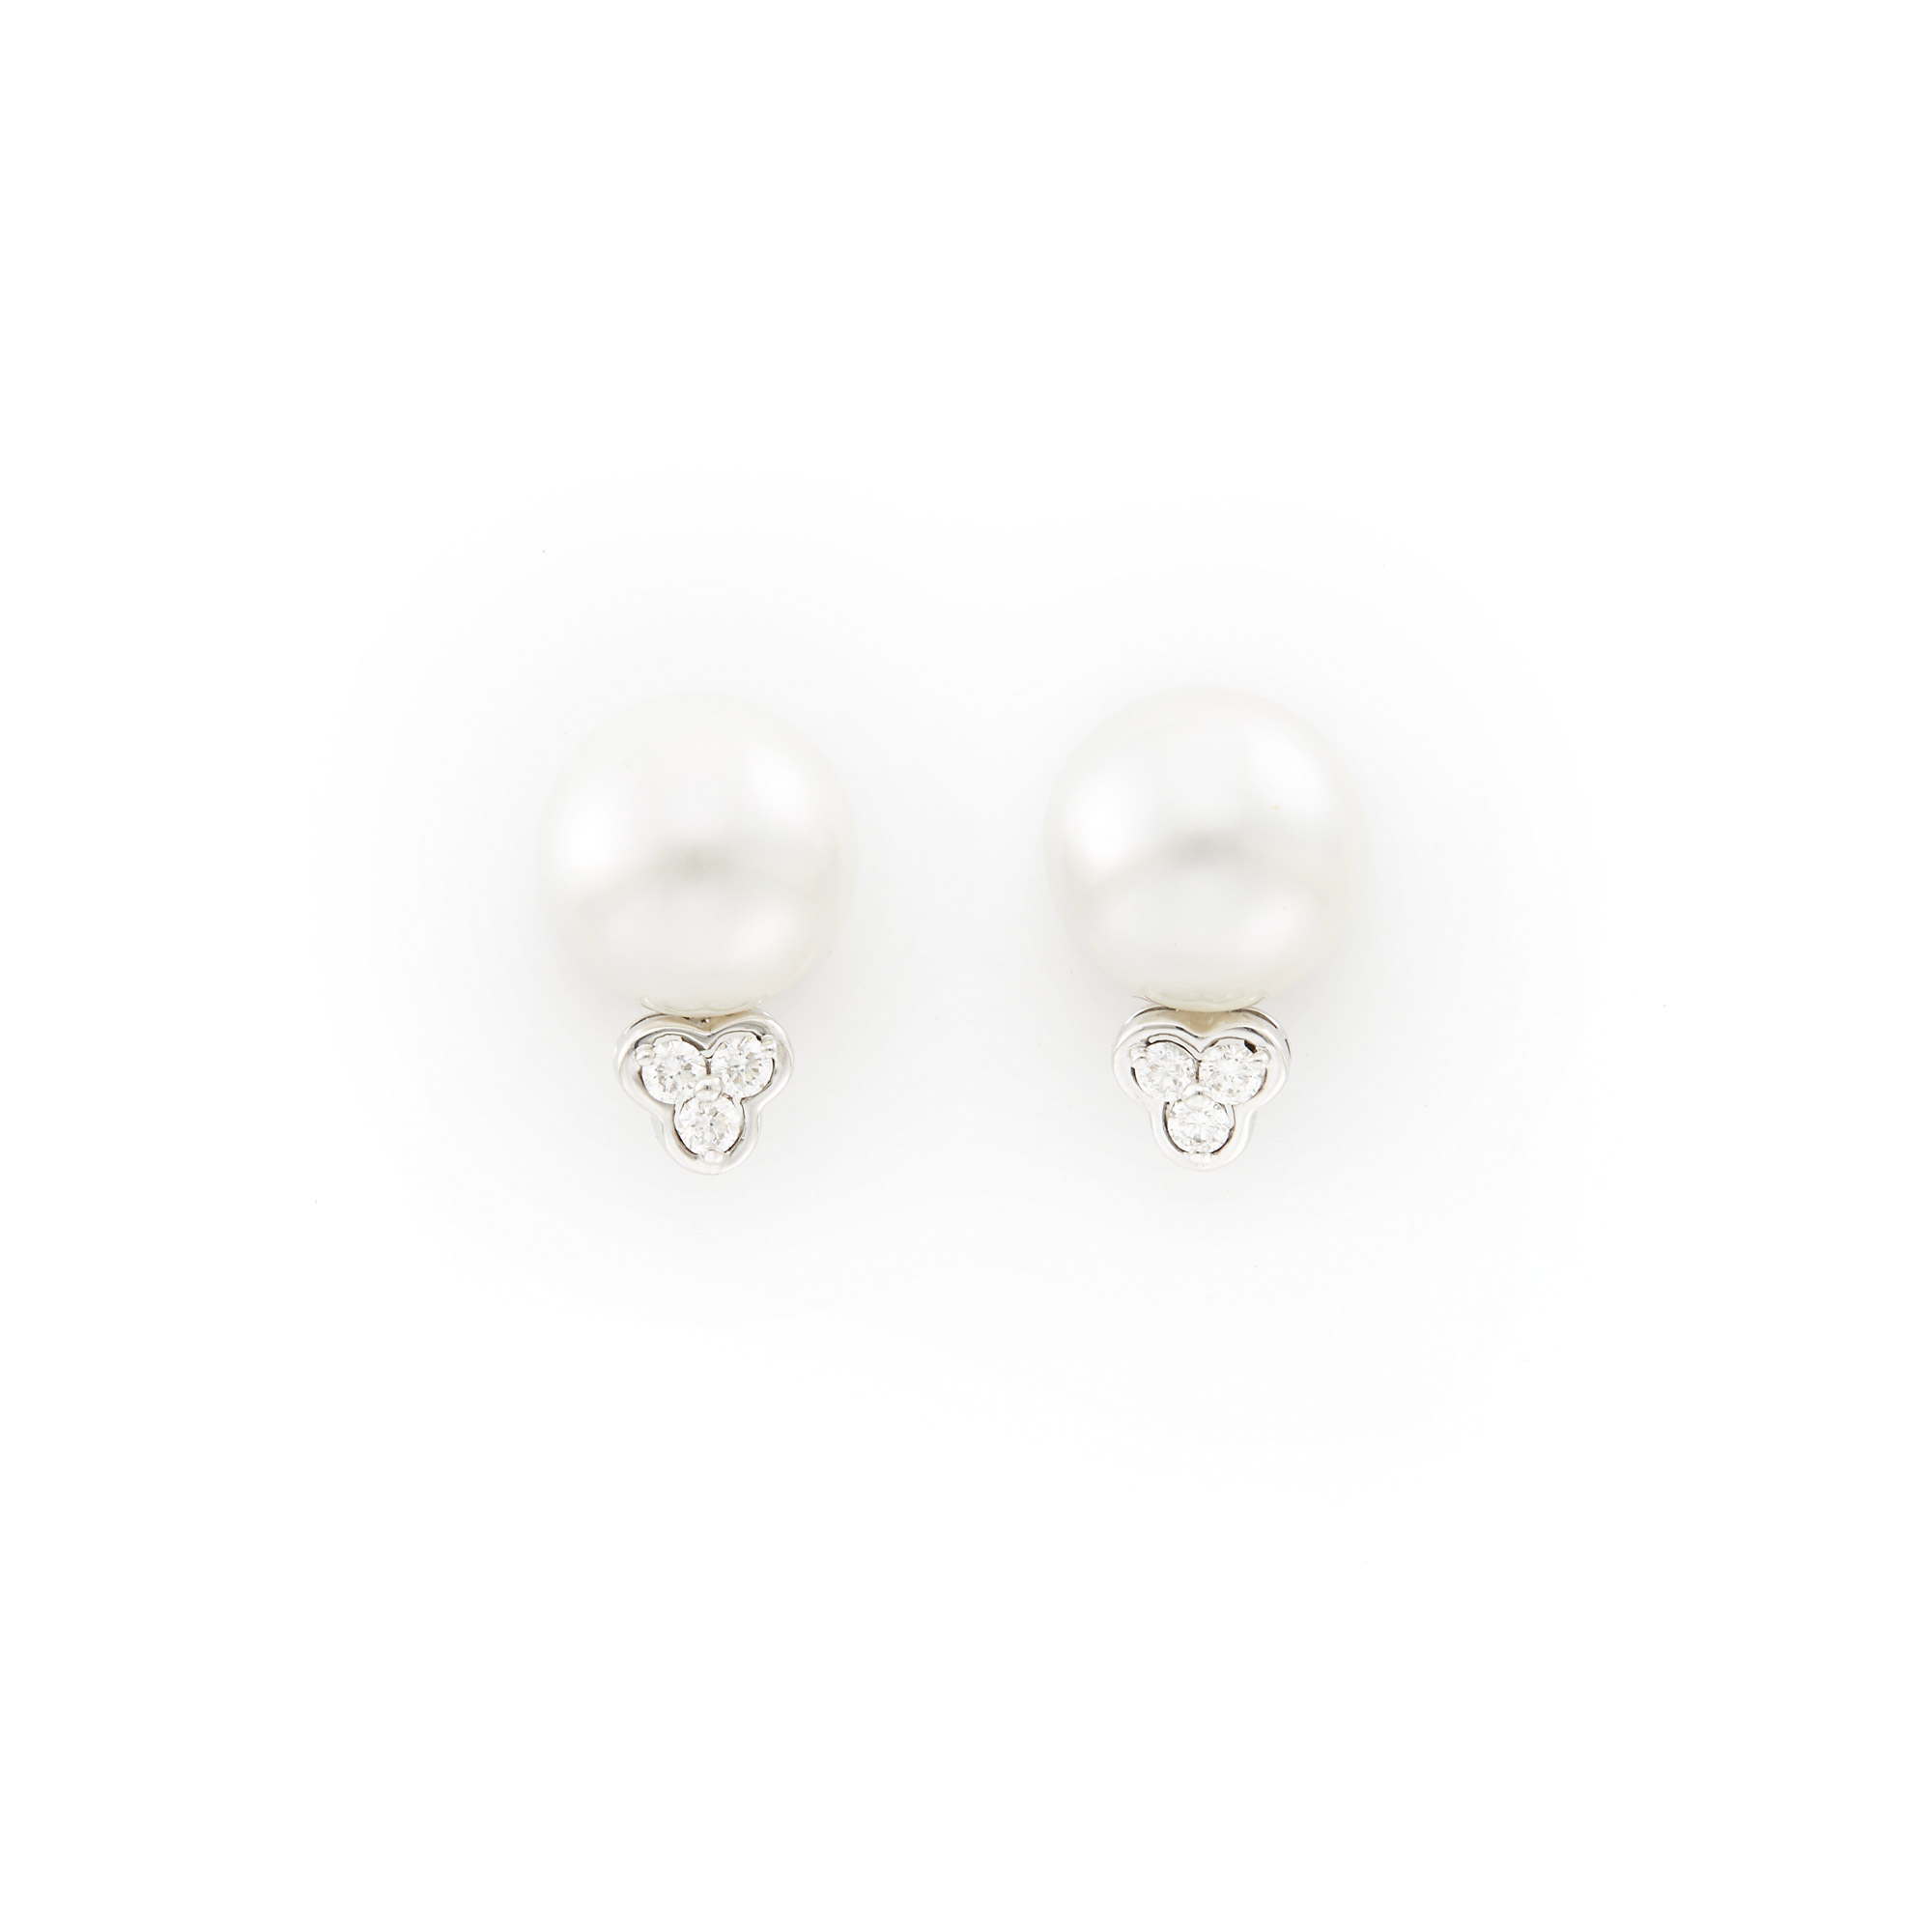 Lot image - Pair of White Gold, Cultured Pearl and Diamond Earrings